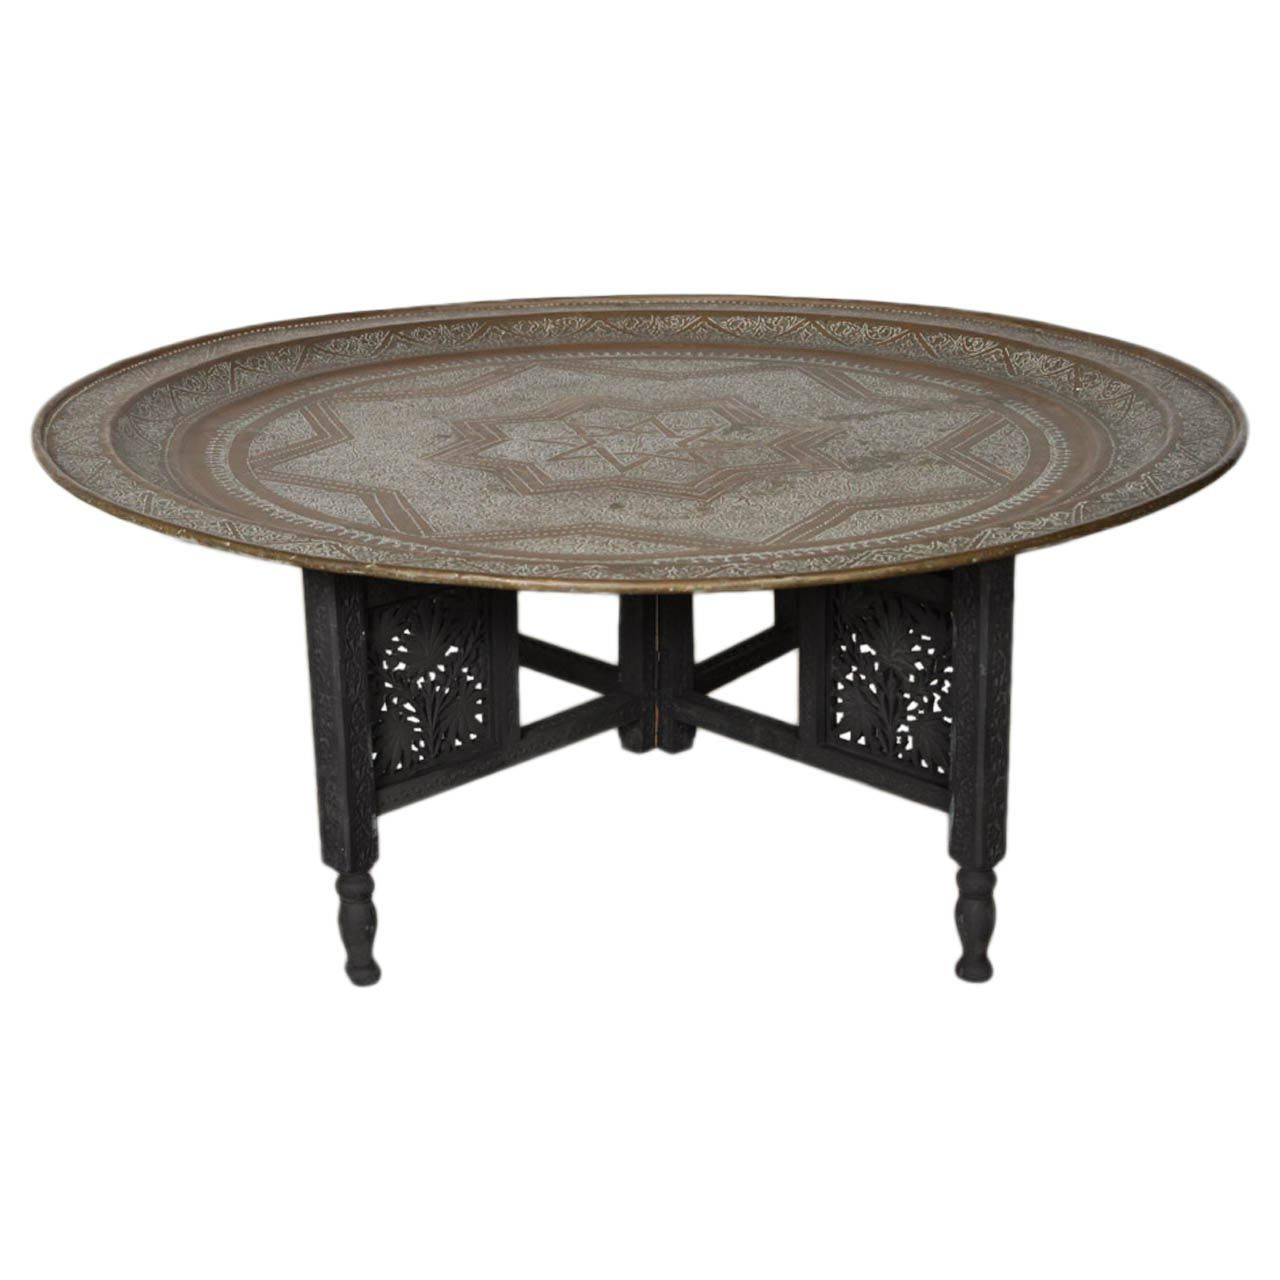 Bamileke coffee table for sale online in australia client moroccan metal coffee table geotapseo Choice Image